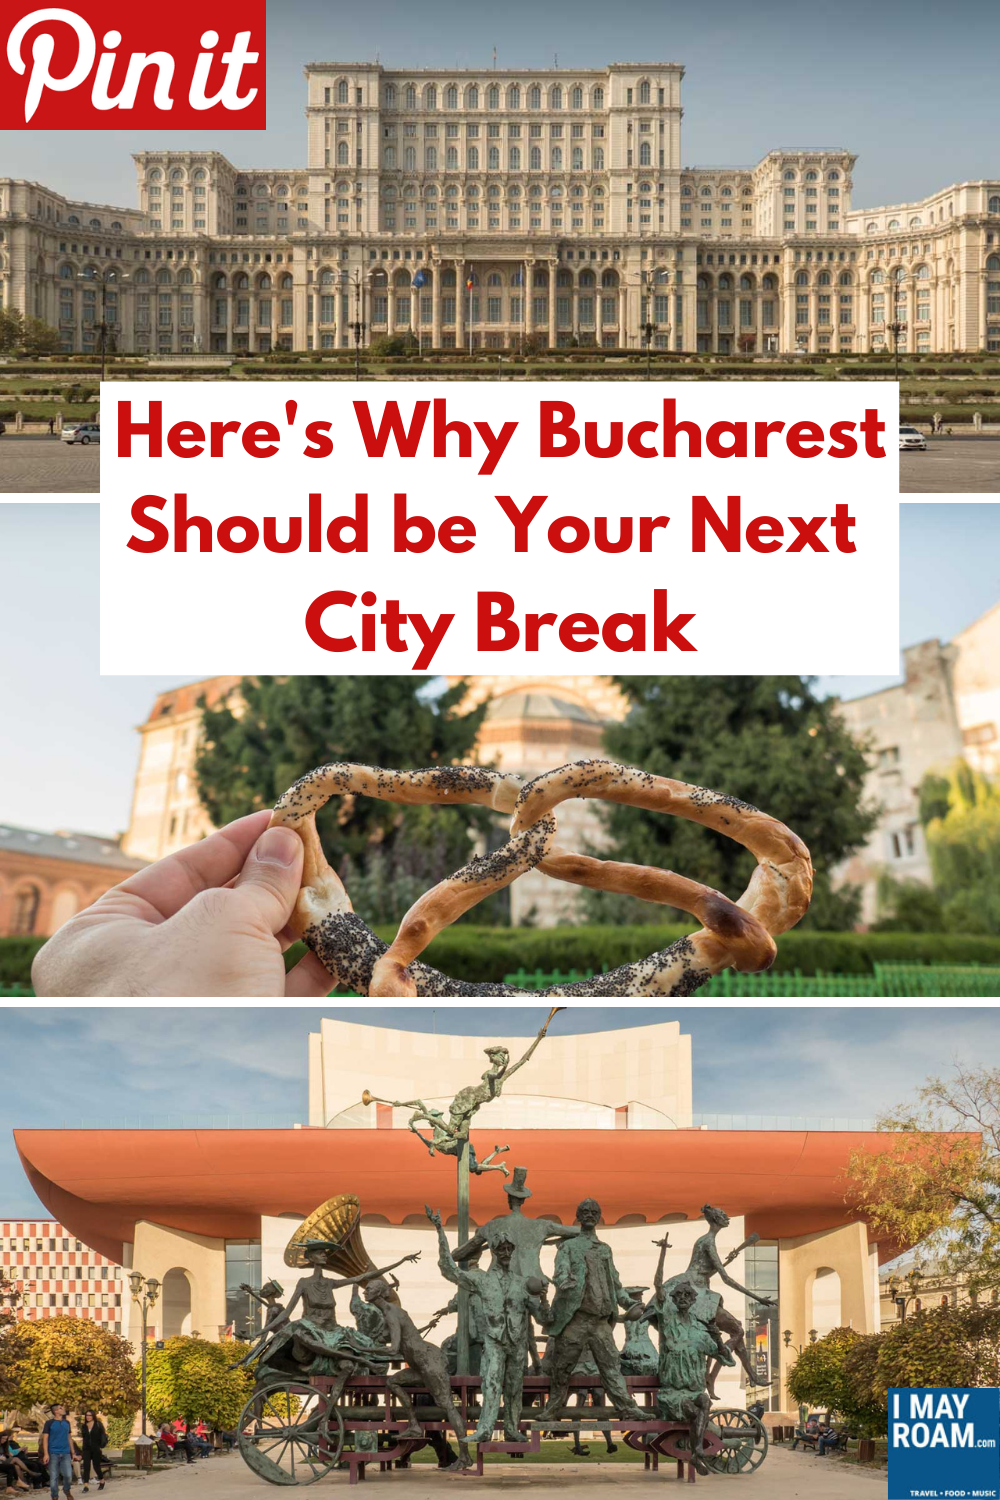 Pinterest Here's Why Bucharest Should be Your Next City Break